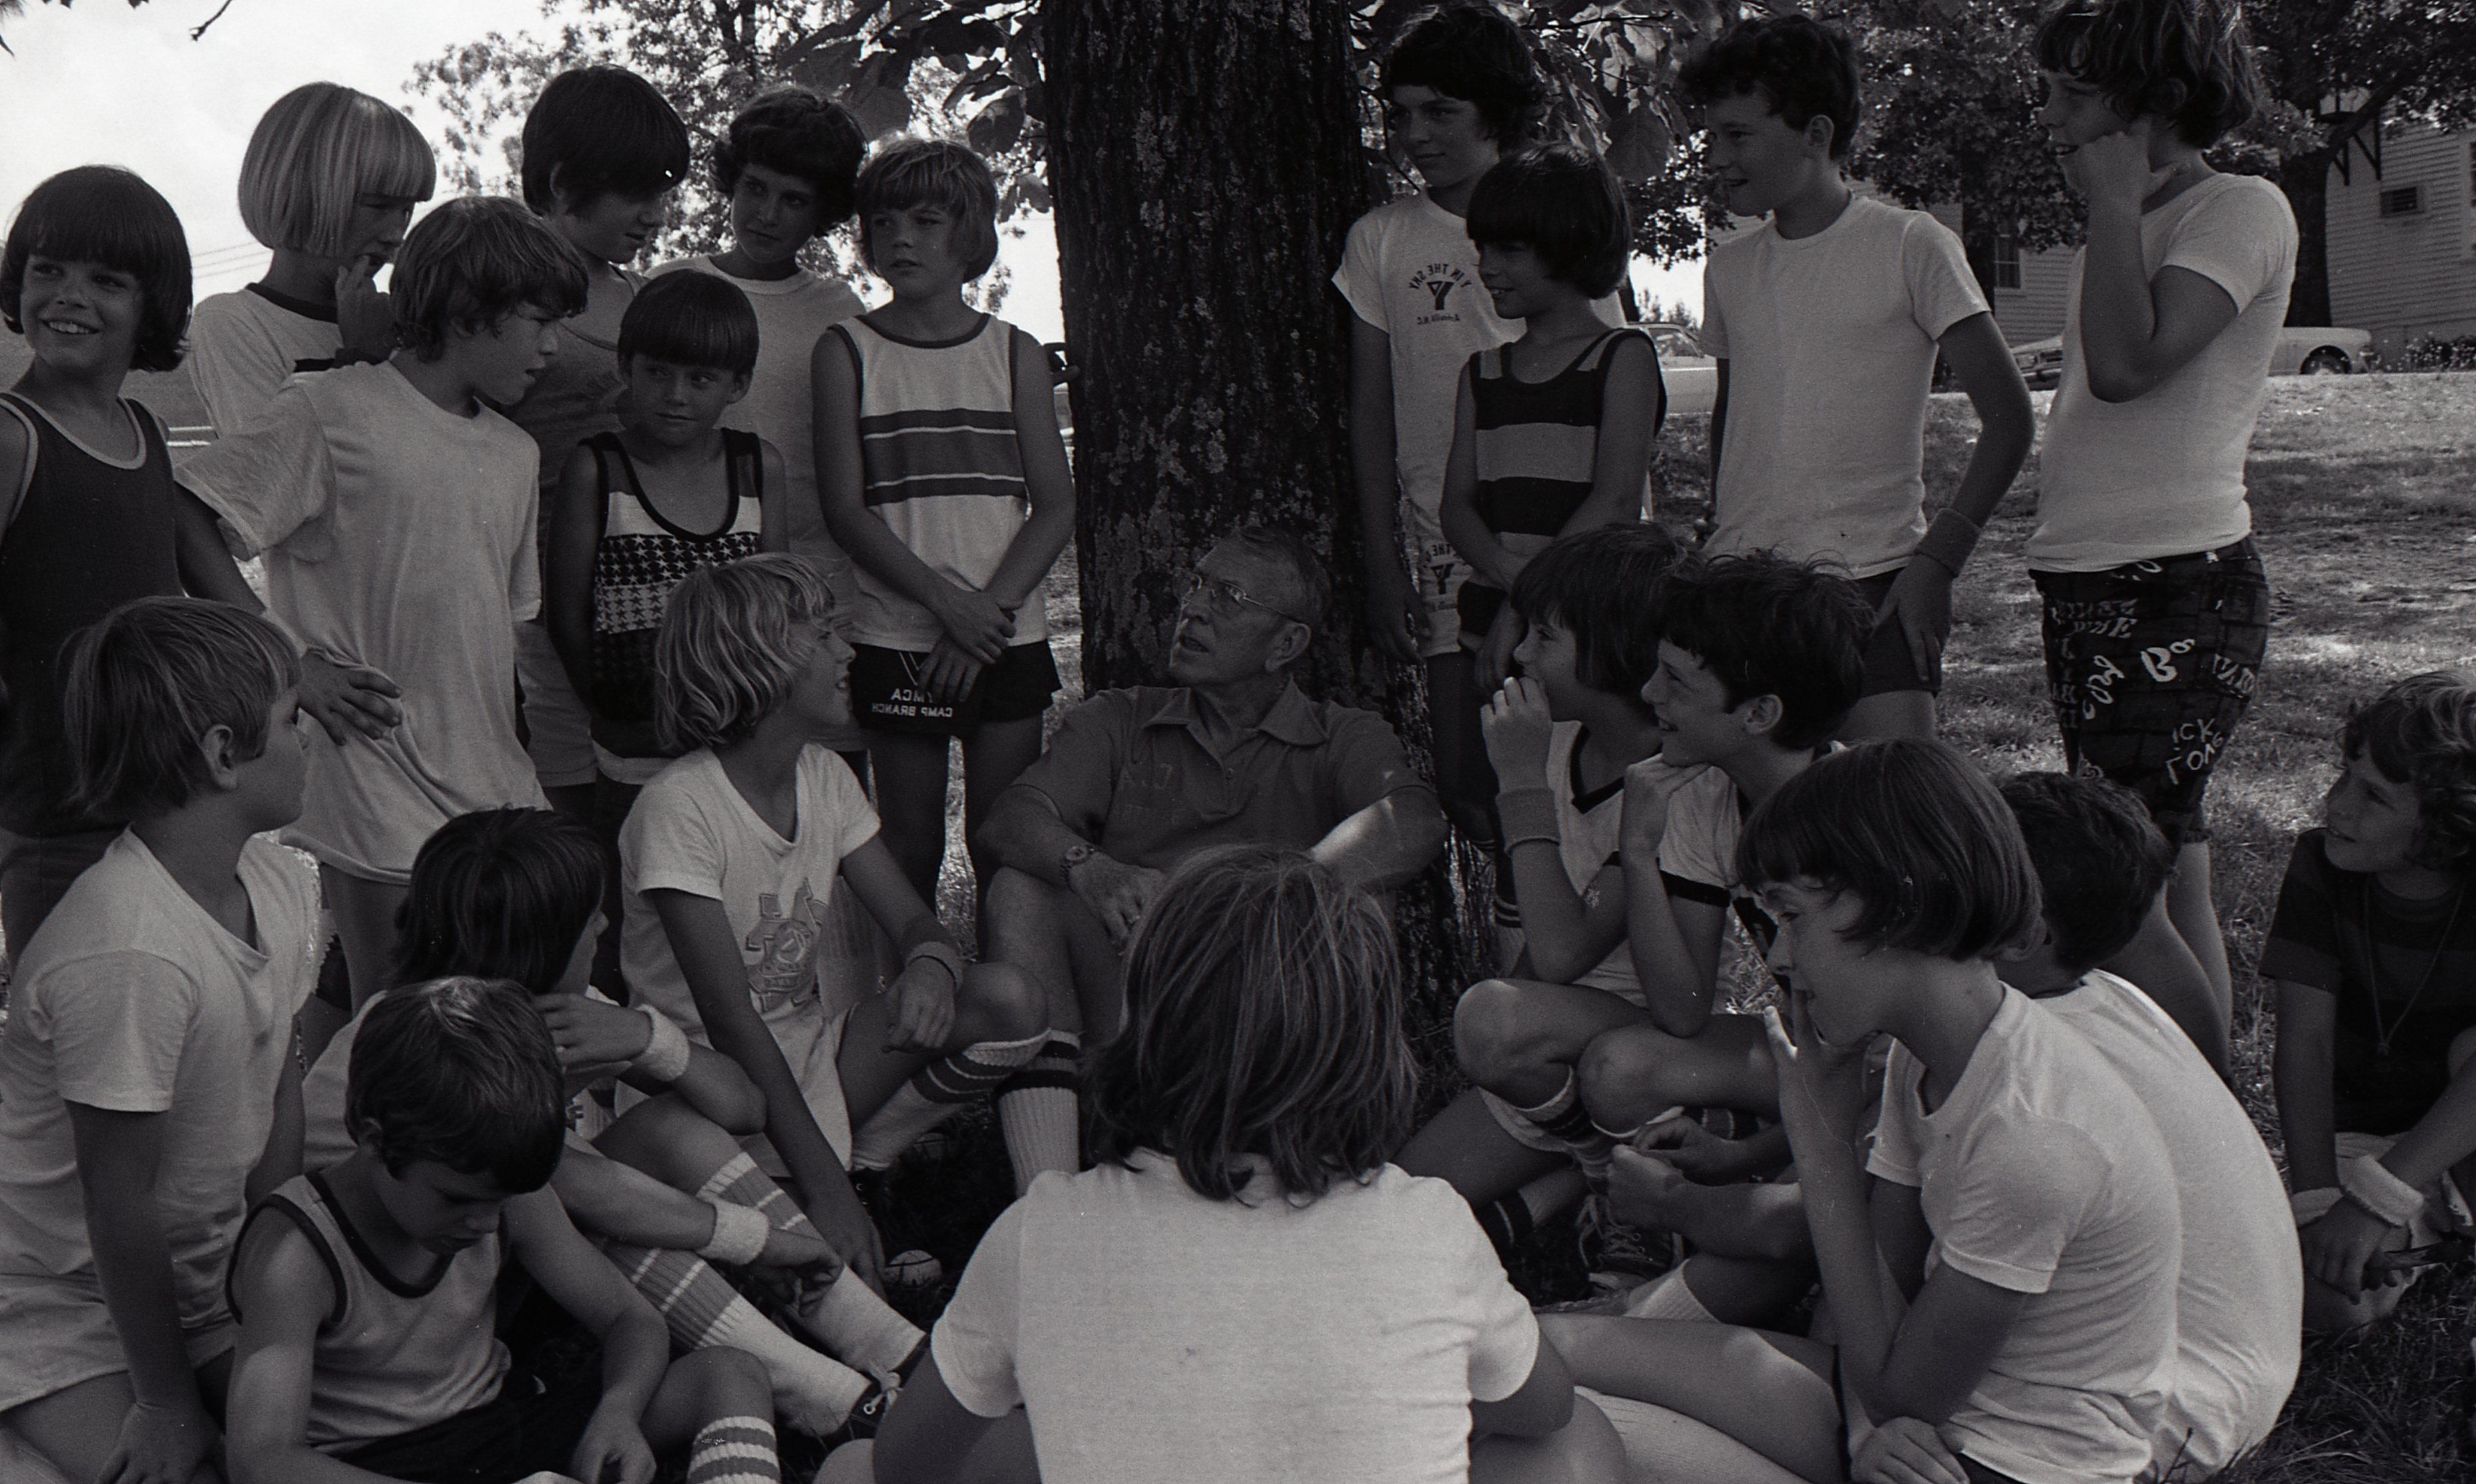 John Wooden sits under tree and is surrounded by basketball camp kids